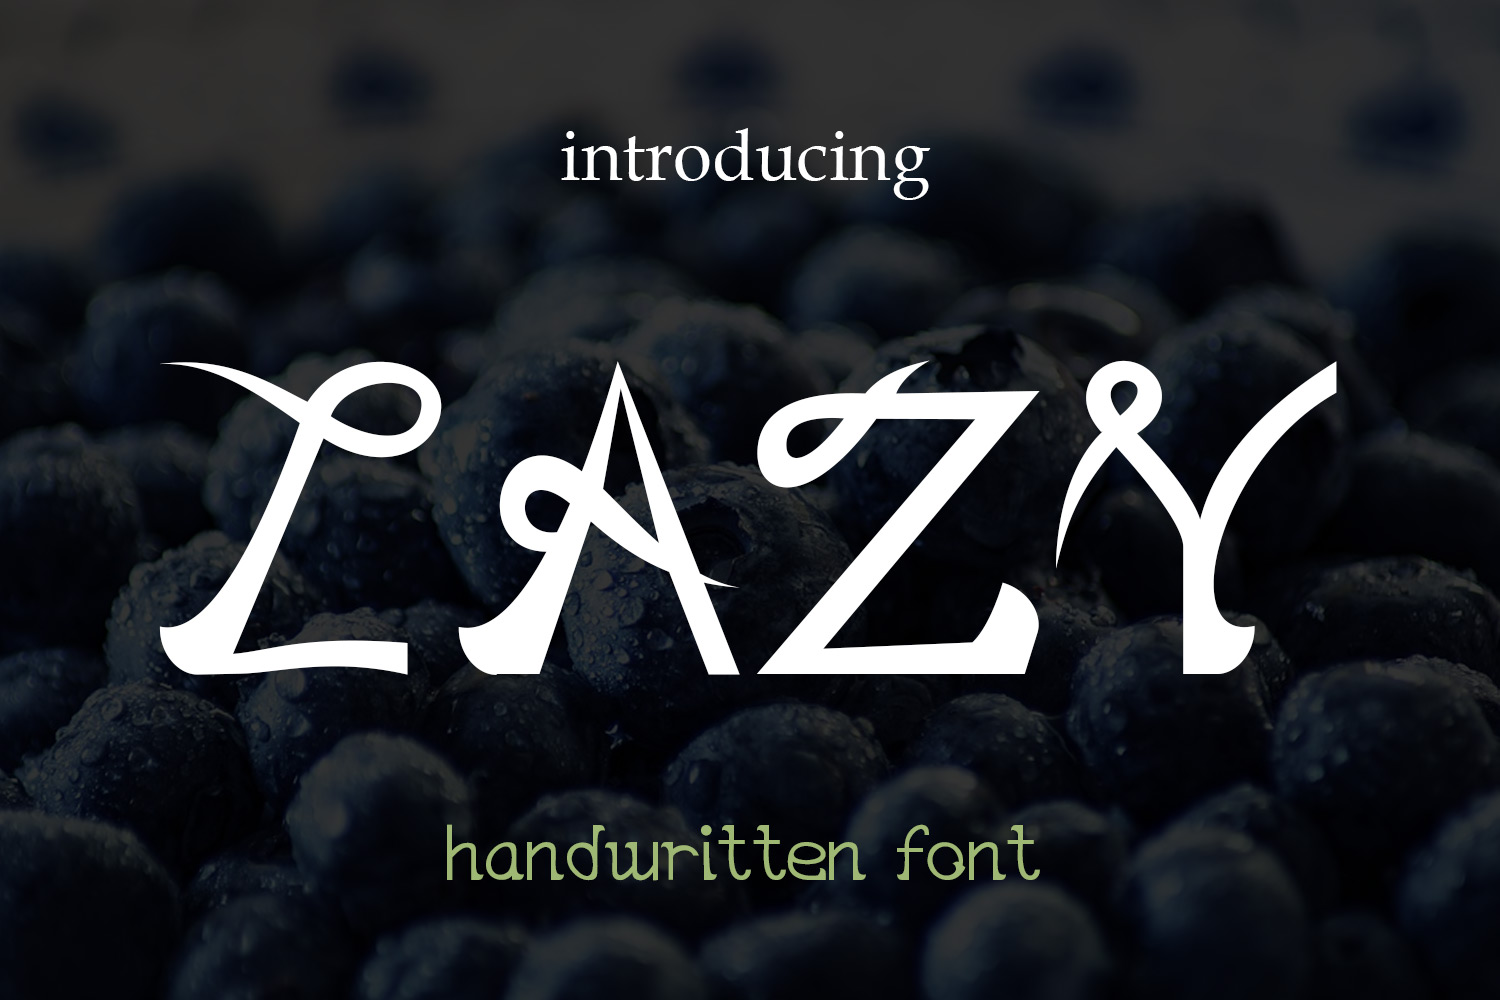 EP Lazy - handwritten font example image 1